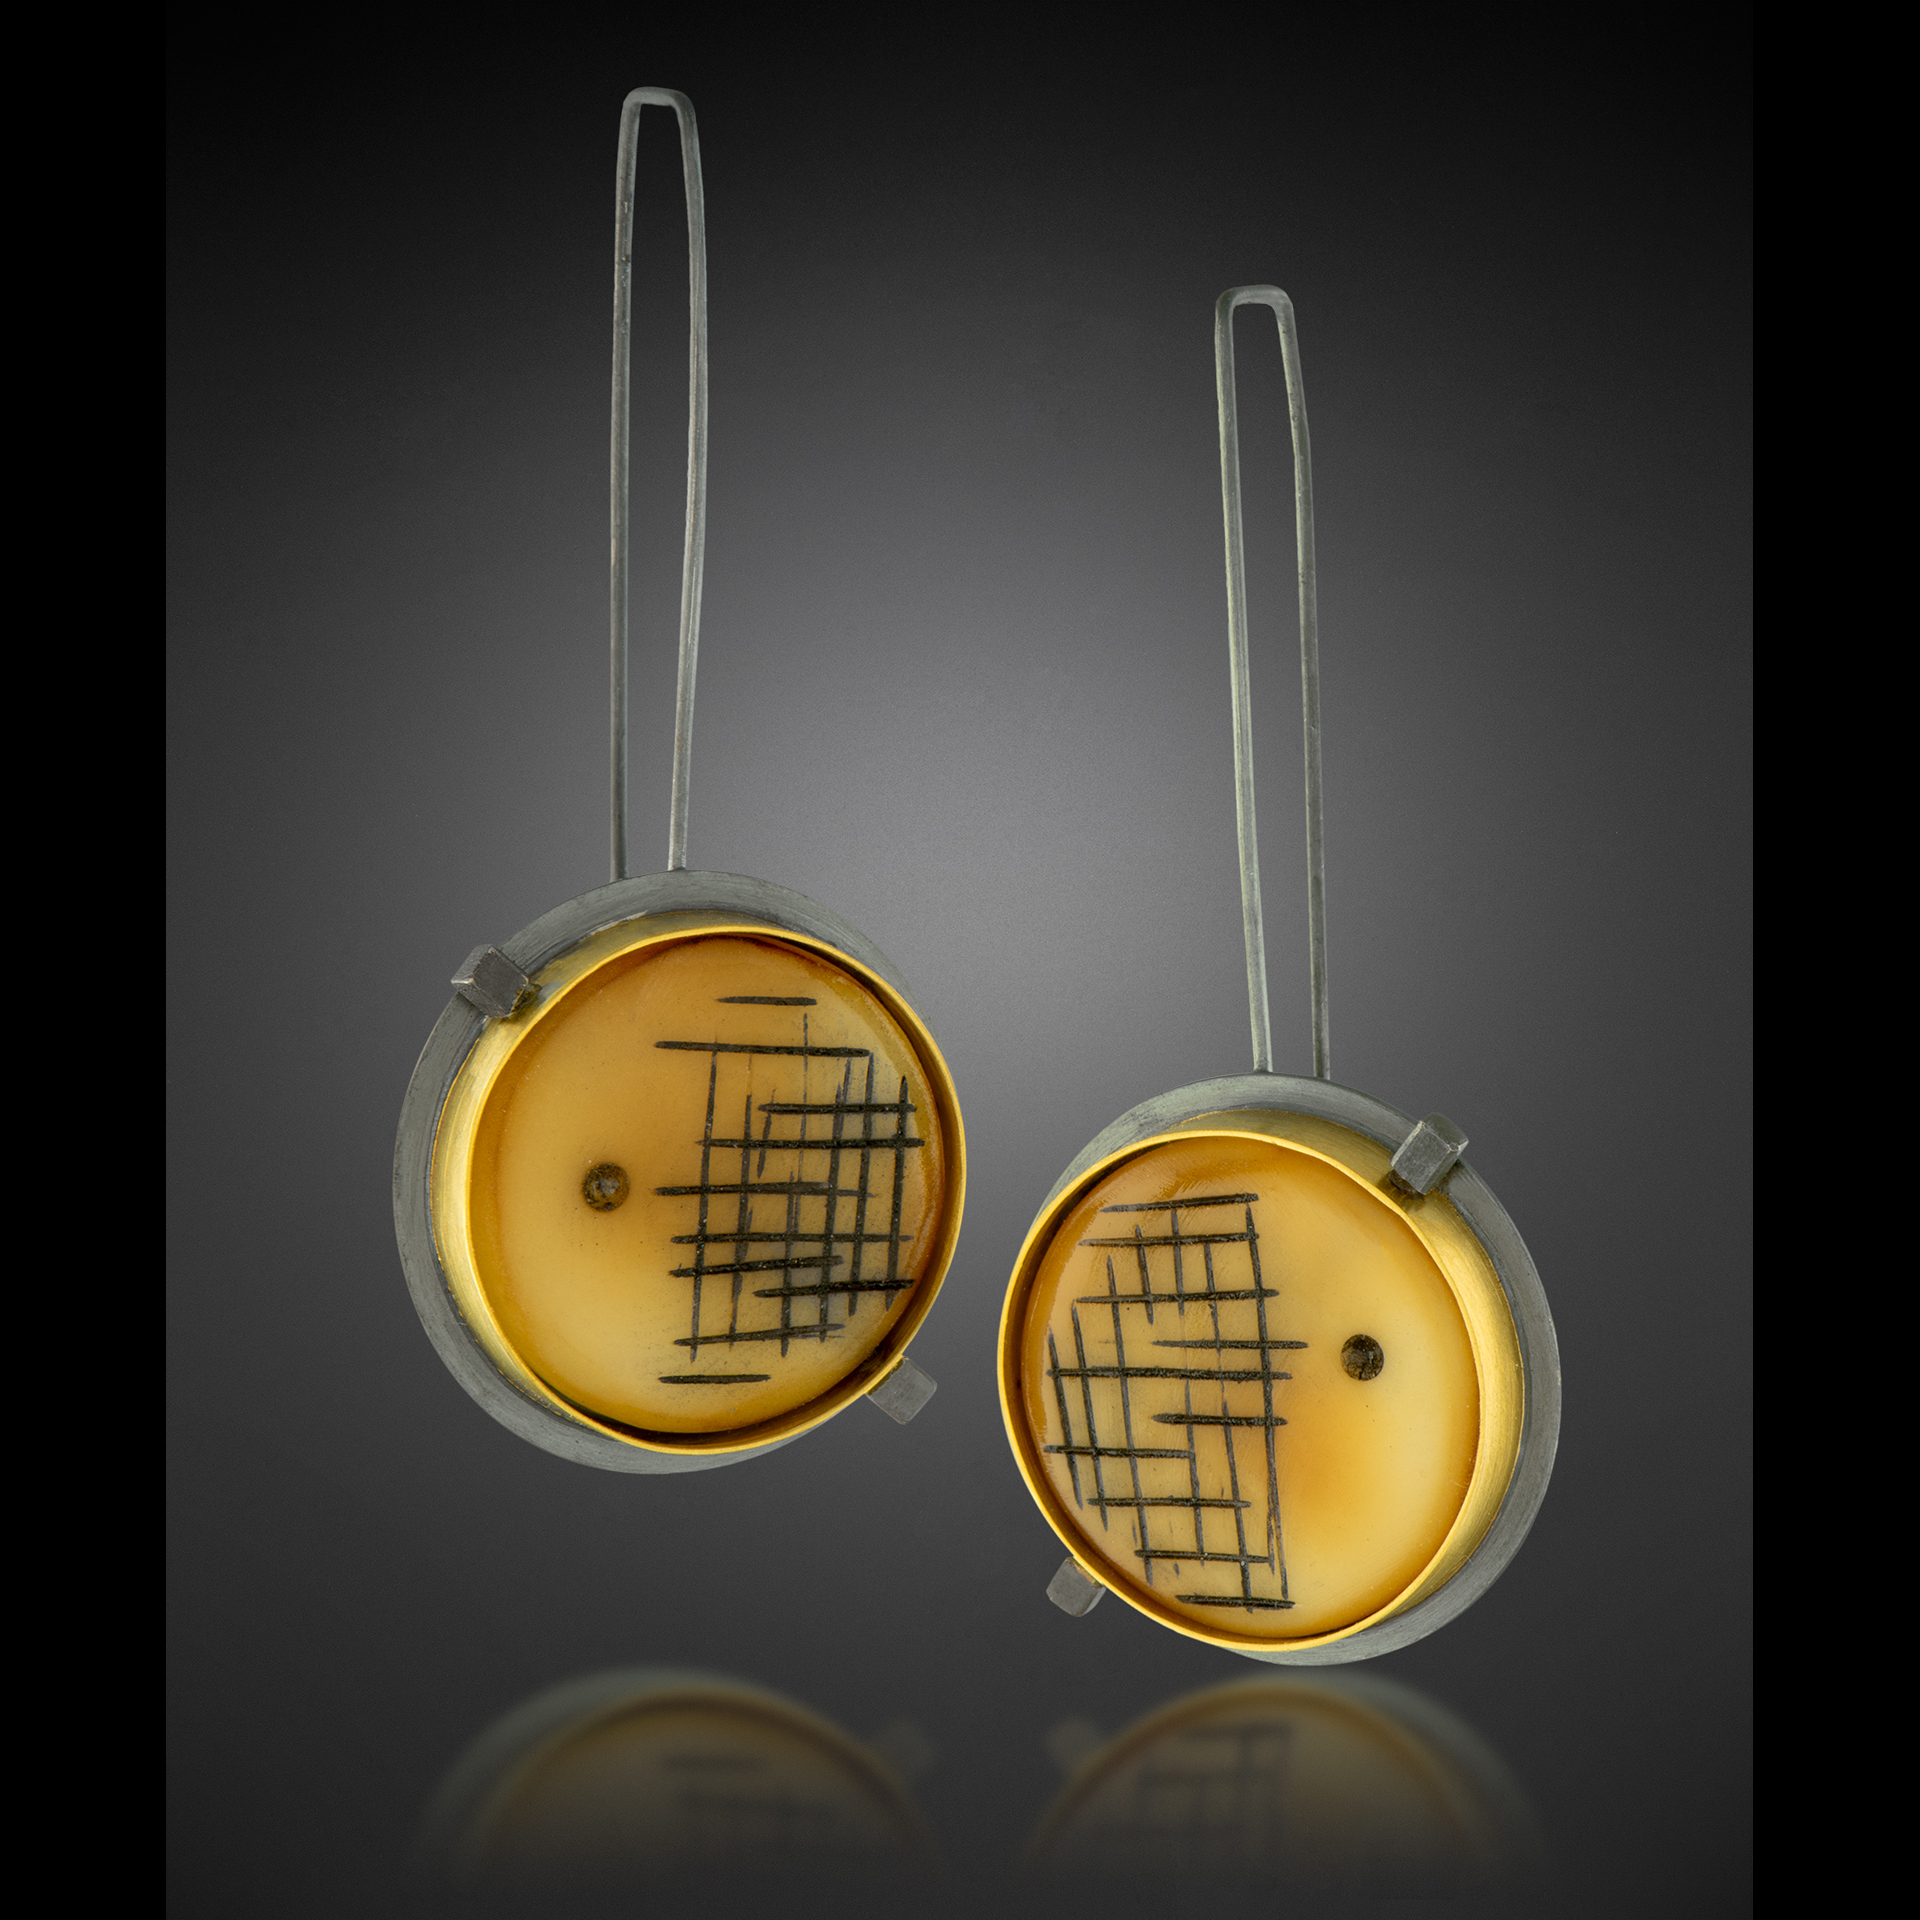 Tagua earrings set in oxidized sterling silver with 22k gold bezels. Please inquire about price and availability.